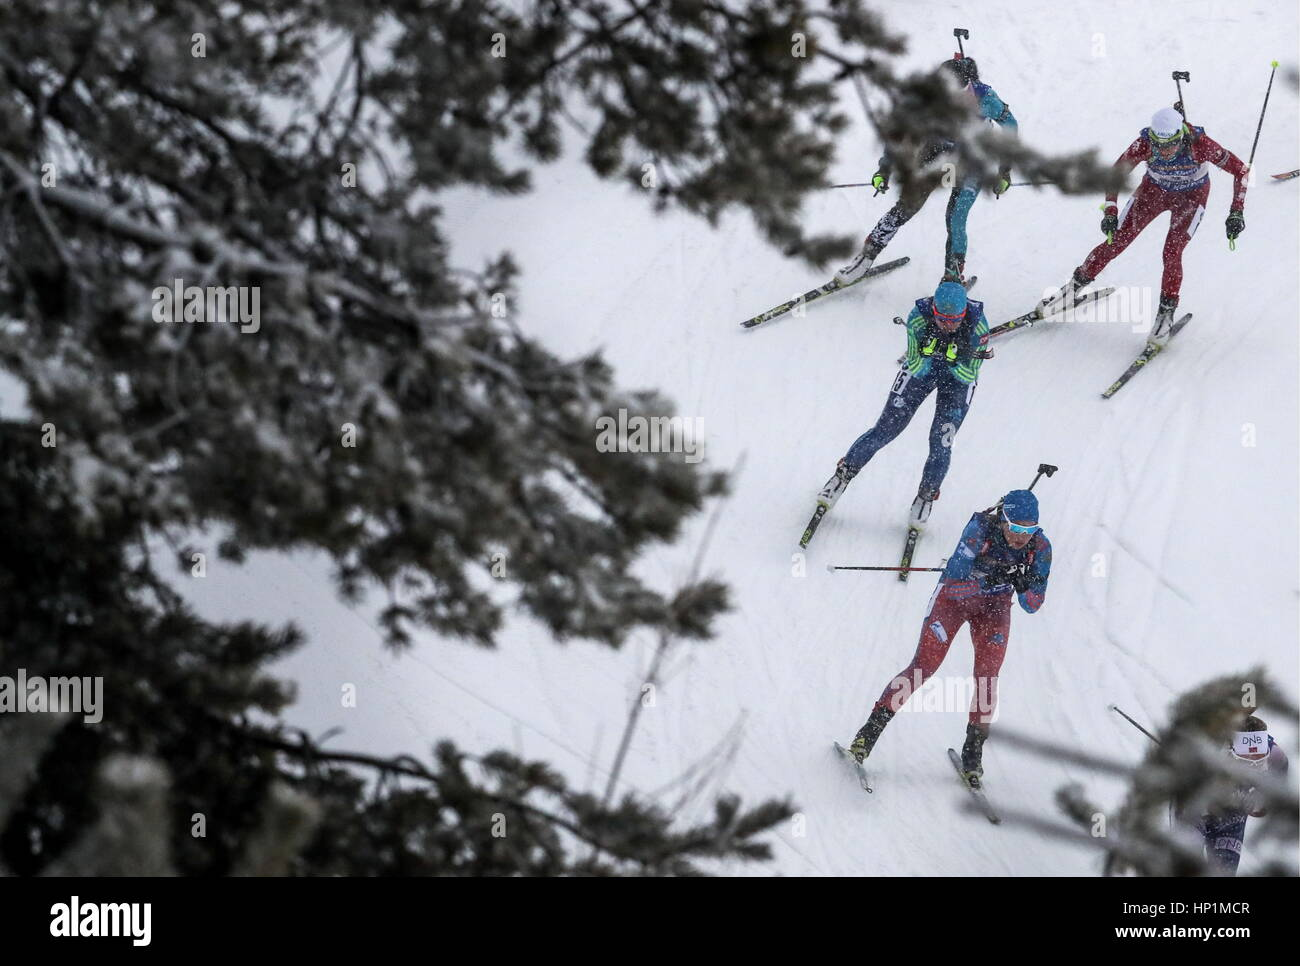 Hochfilzen, Austria. 17th Feb, 2017. Biathletes compete in the women's 4x6km relay event at the 2017 IBU Biathlon - Stock Image